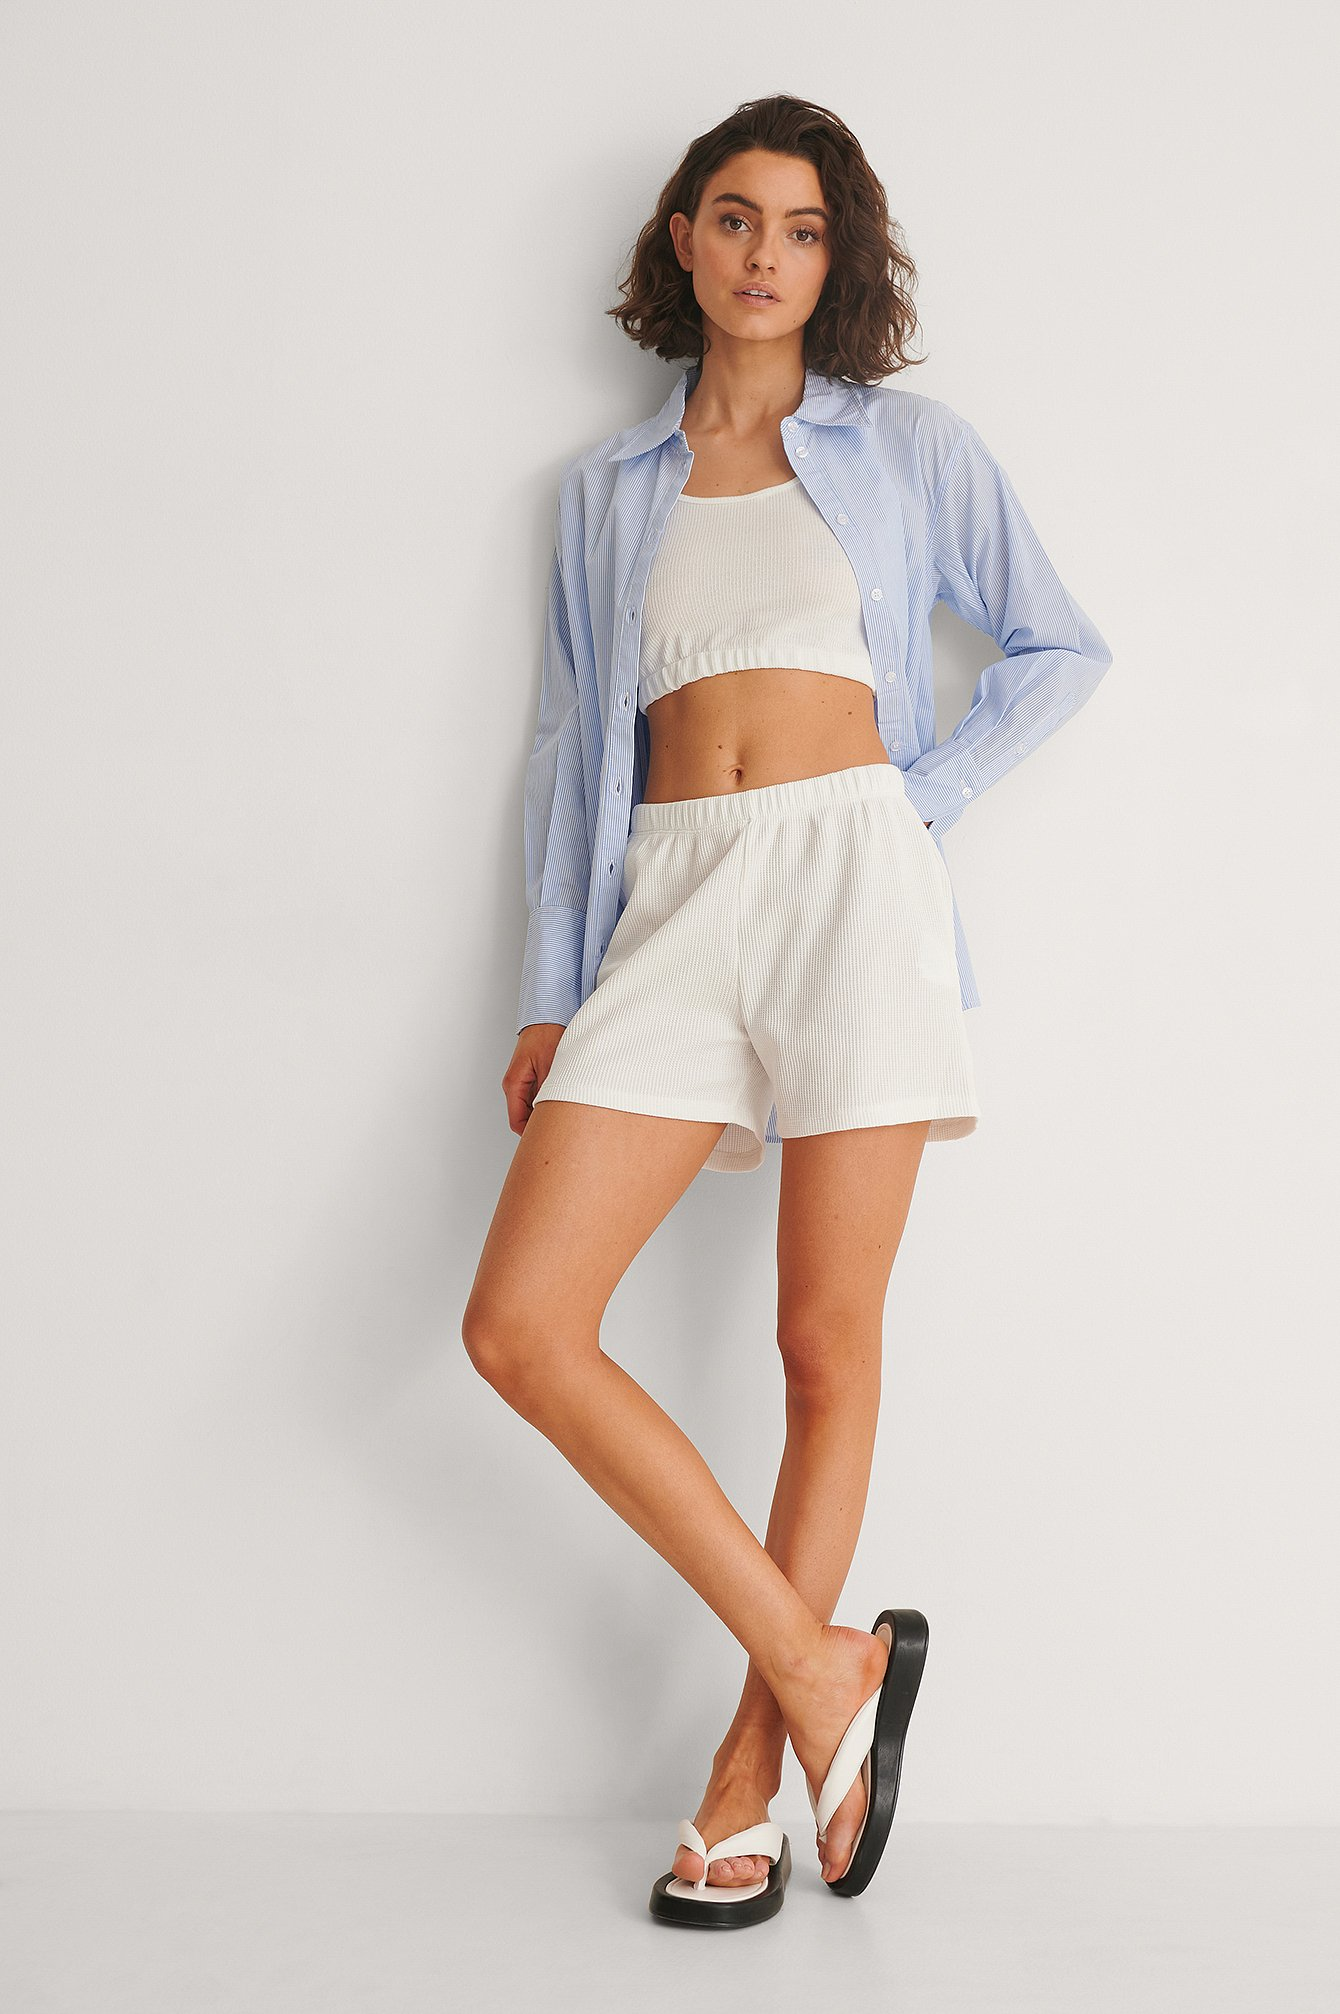 Lilly Shorts Outfit.